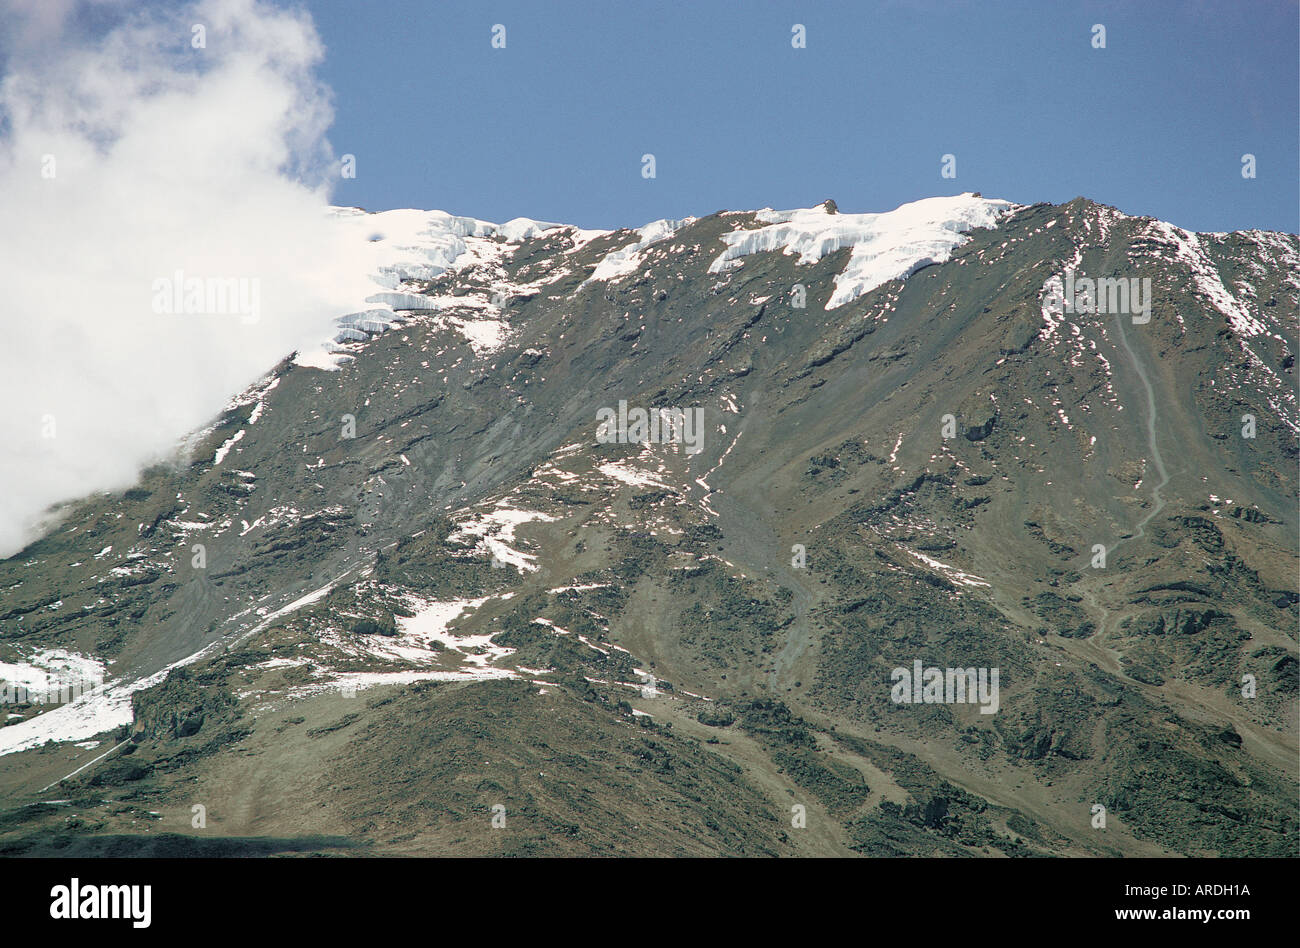 Telephoto view of Gillman s Point and the crater rim of Kibo from the Saddle Kilimanjaro Tanzania - Stock Image